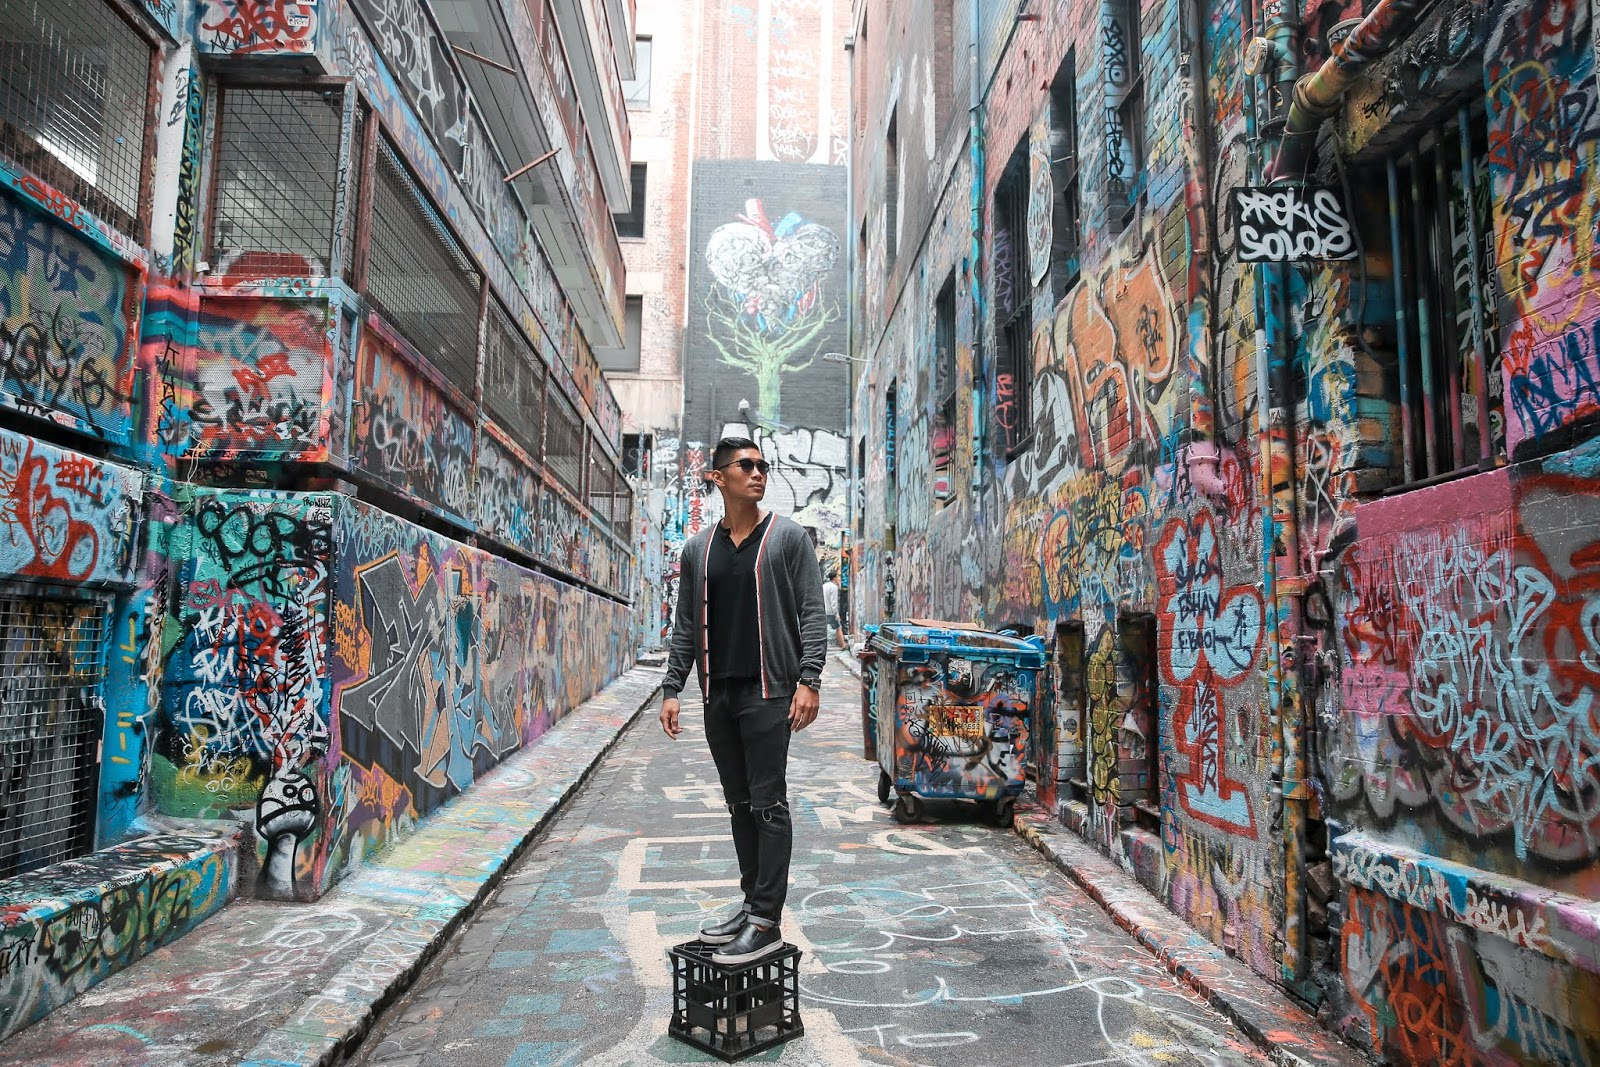 Hosier Lane in Melbourne, Leo Chan